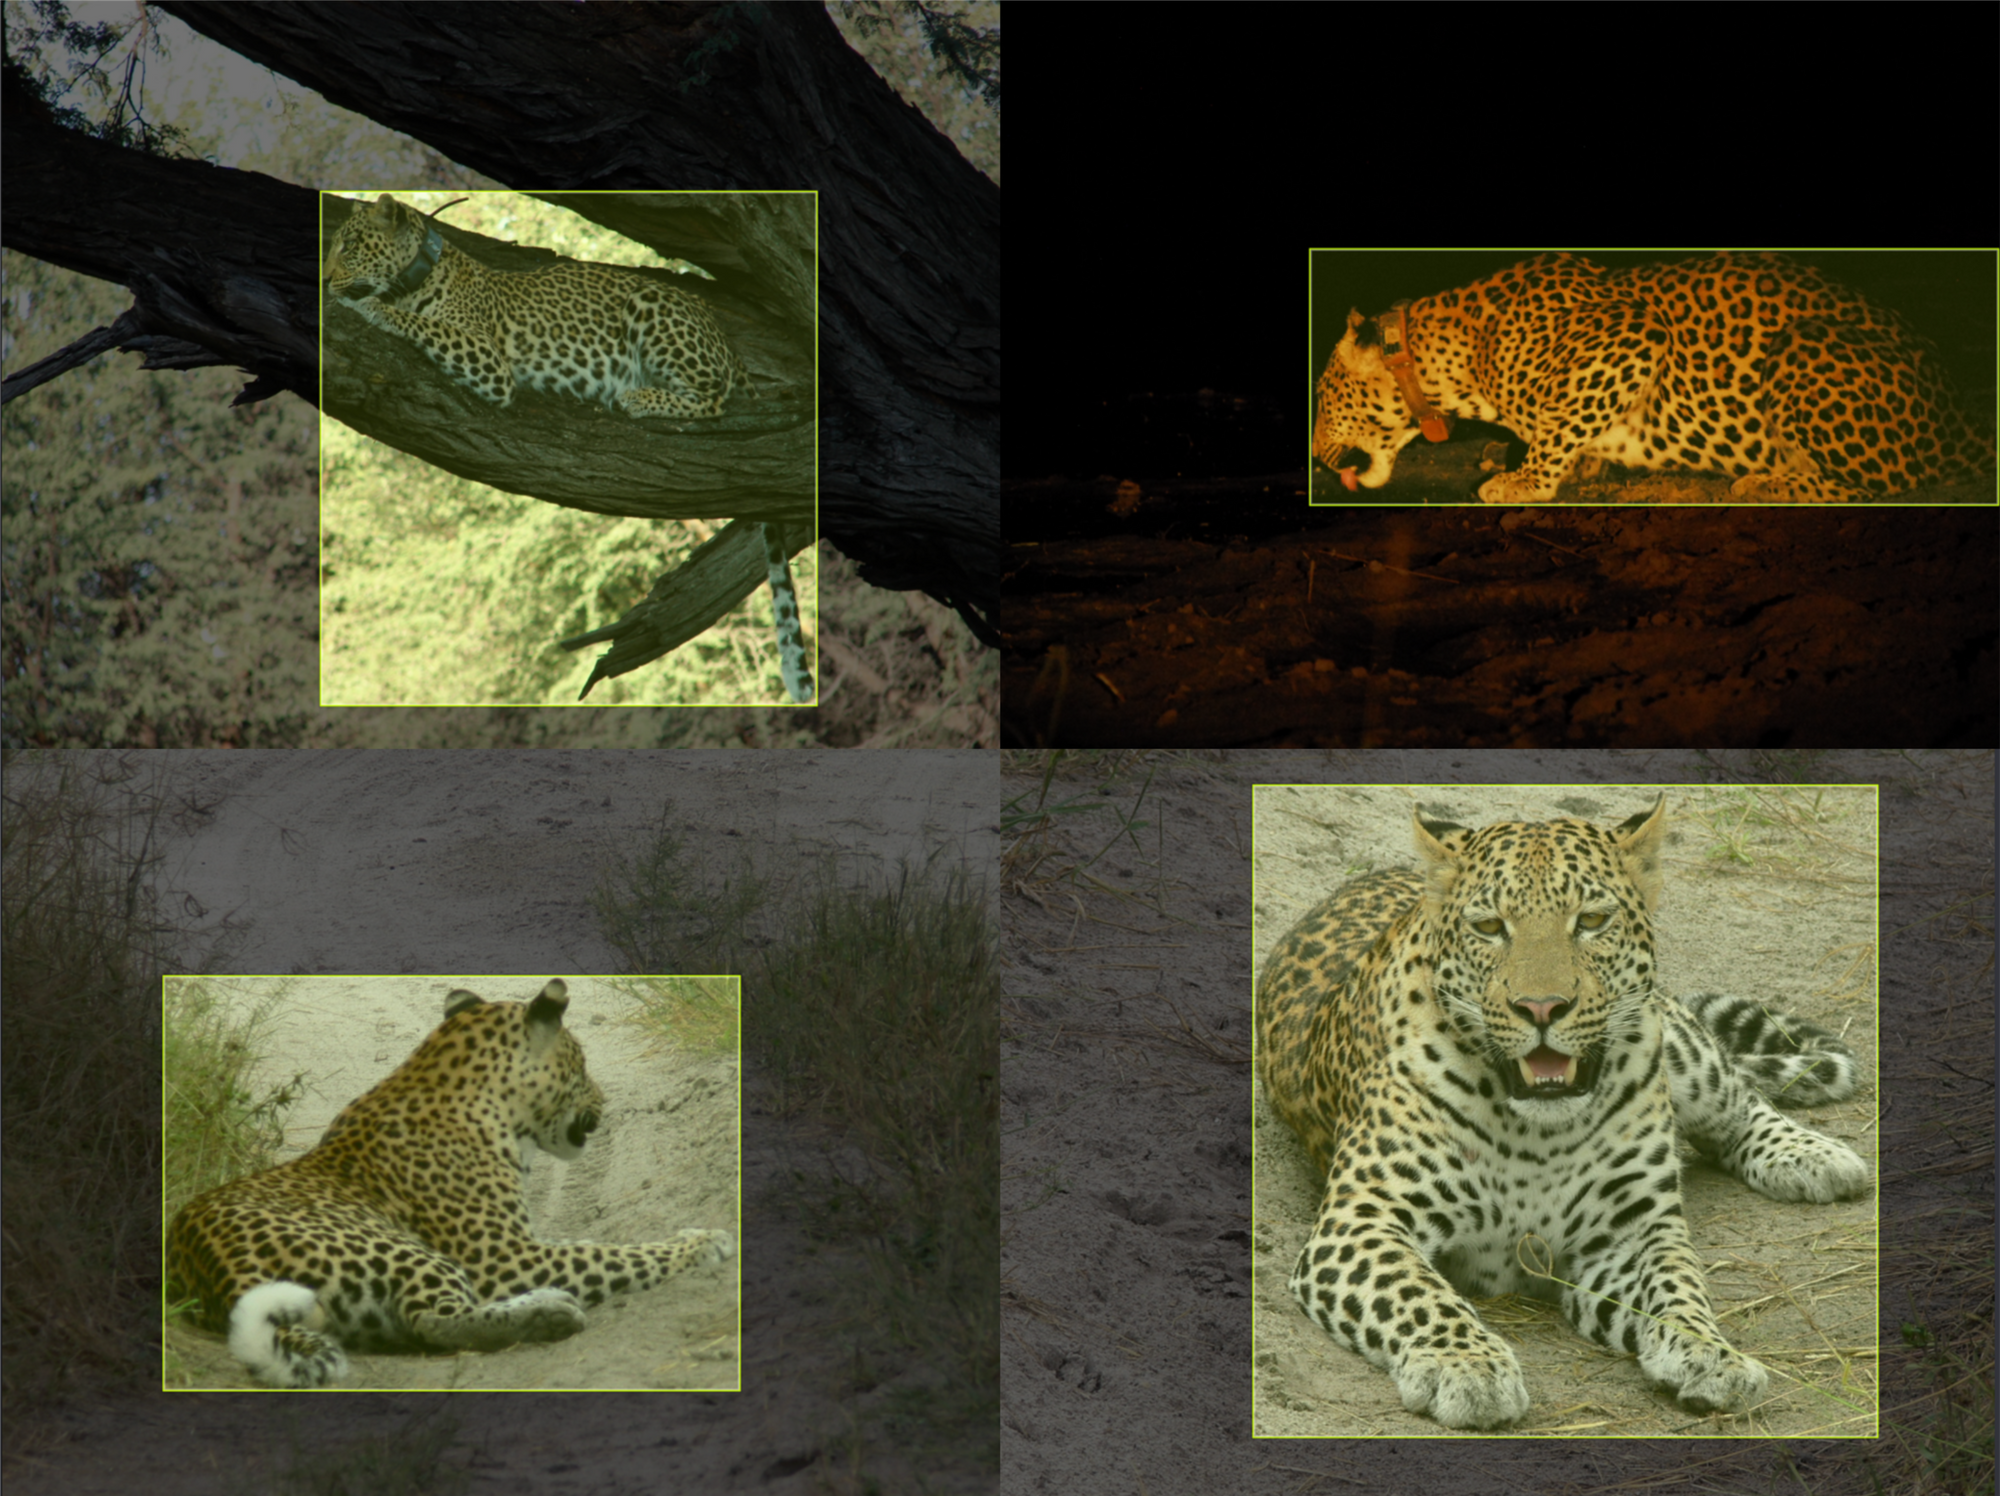 Labeled leopards for computer vision